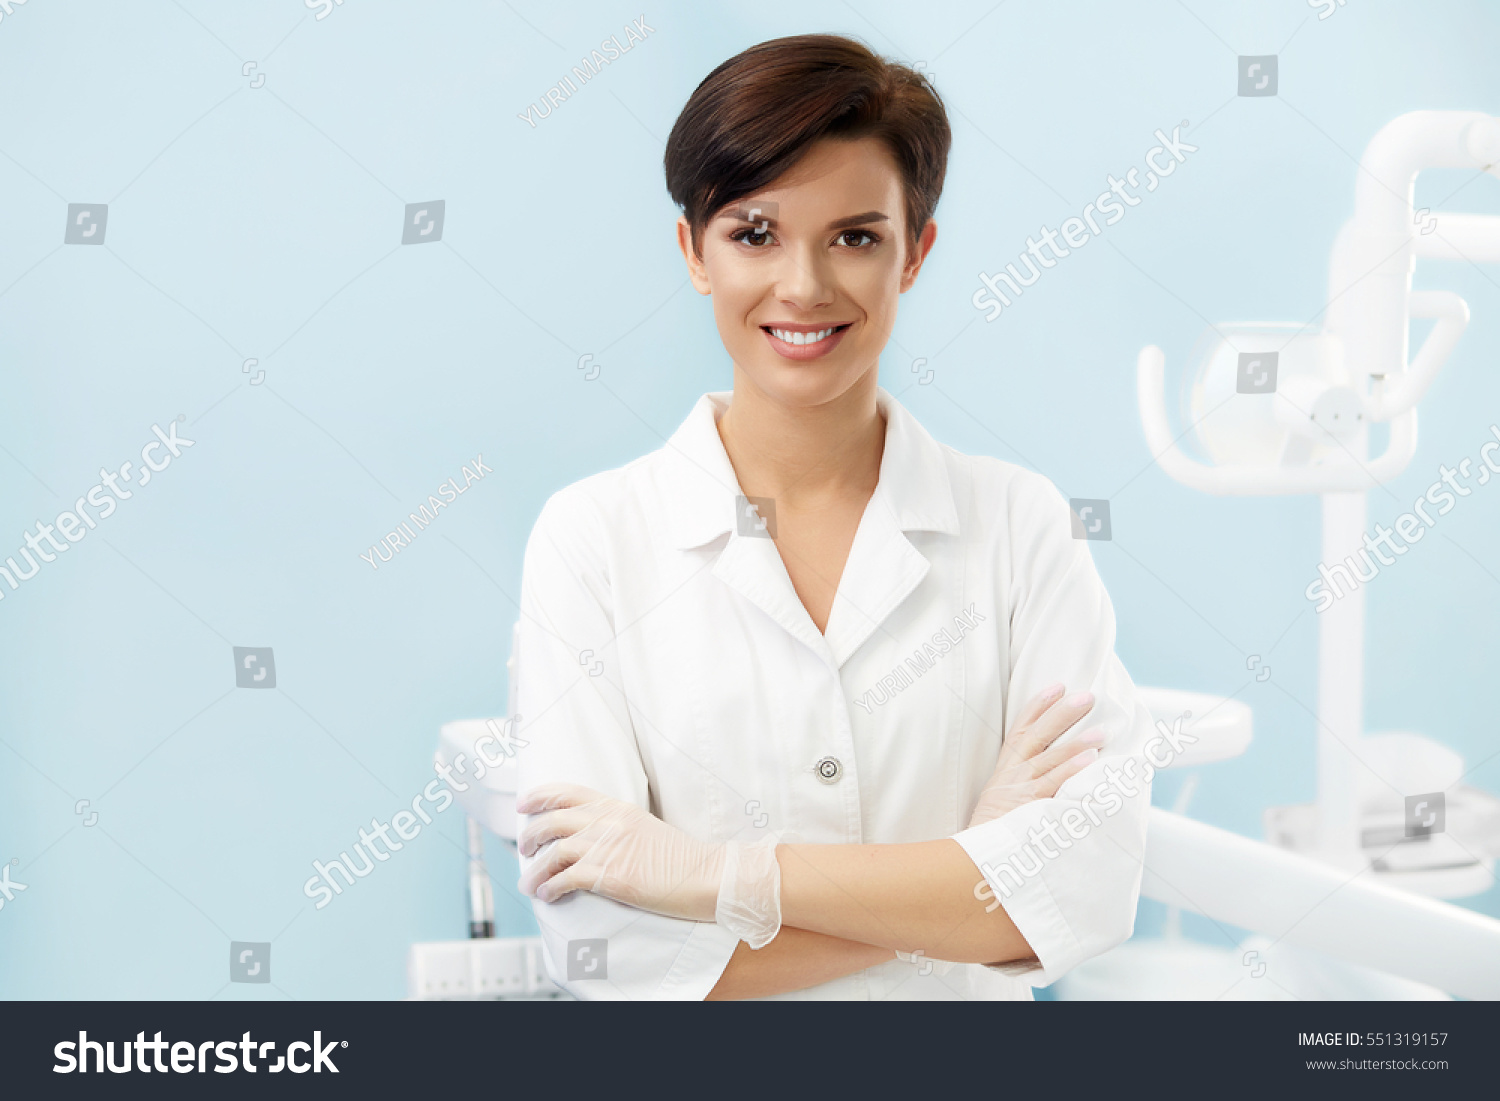 Young Female Doctor Dentist Officebeautiful Smiling Stock Photo ...